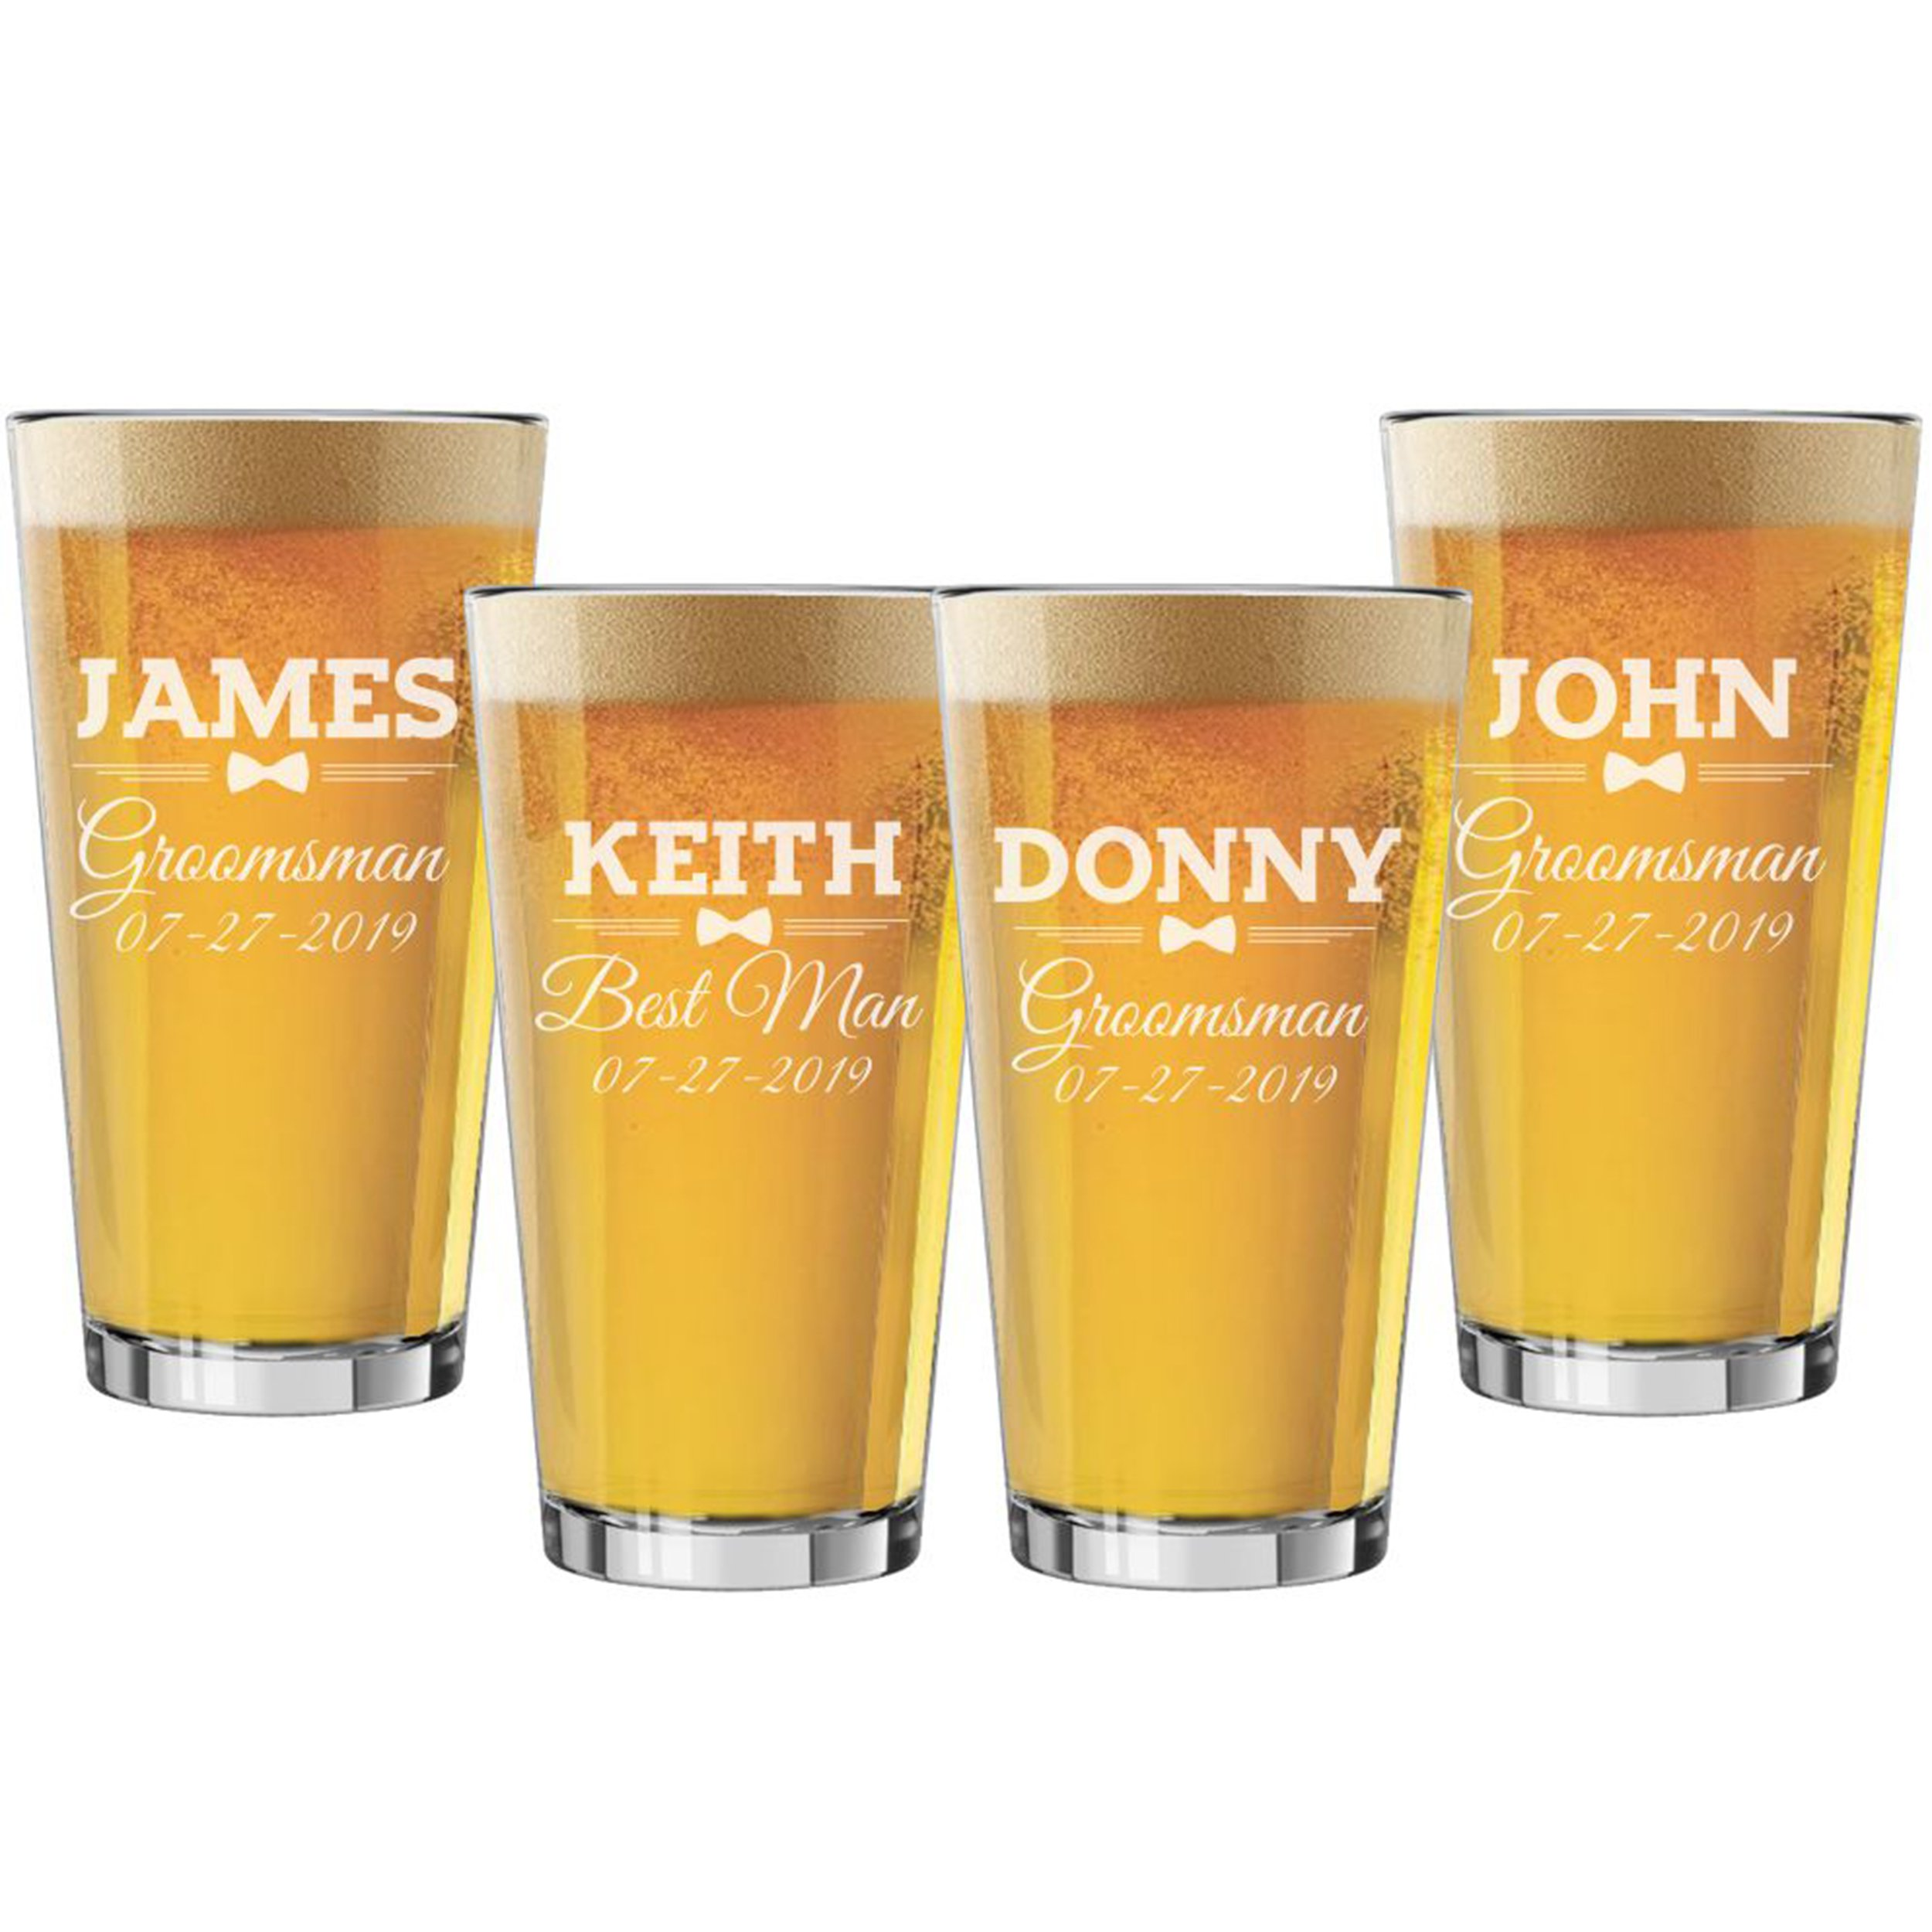 Set of 3, Set of 5, Set of 7 and more Groomsman Wedding Party 16 oz Pint Beer Glasses - Custom Engraved and Personalized for Free - Bow Tie Style (4)